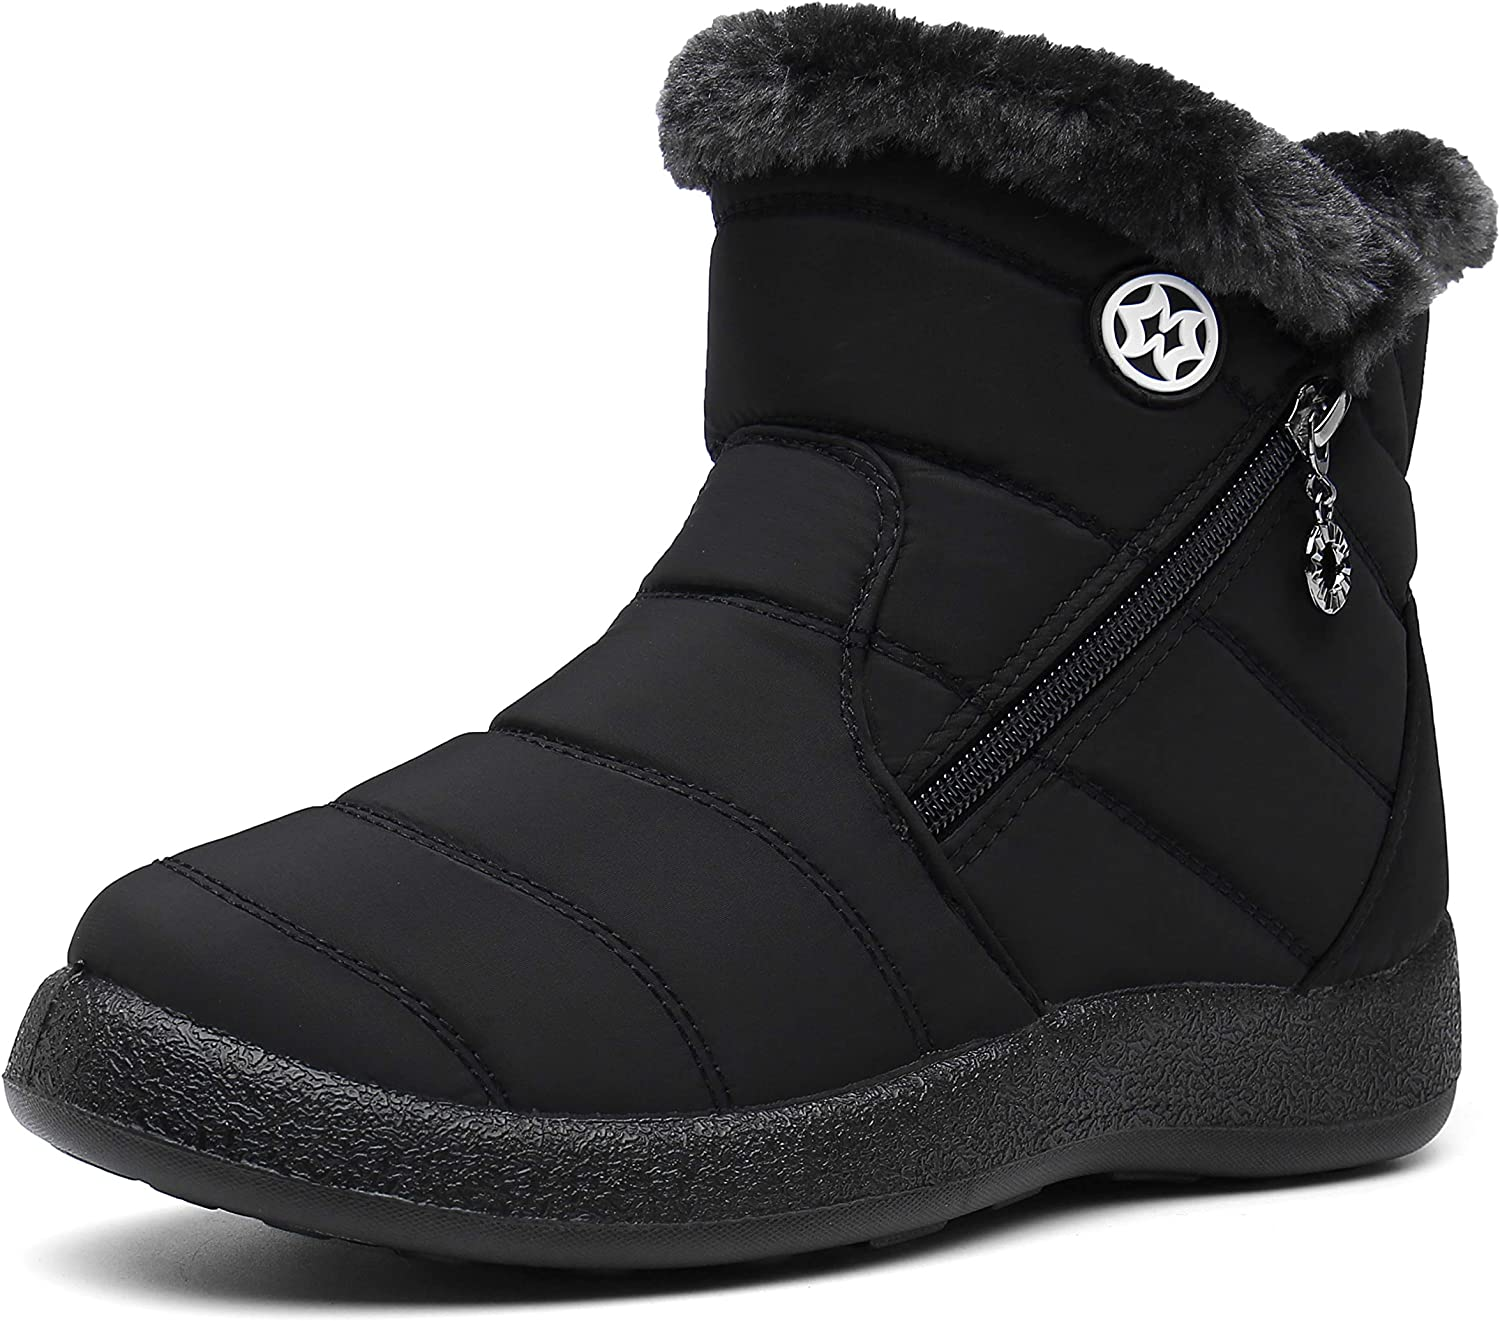 Womens Warm Fur Lined Winter Snow O Waterproof Ankle Boots Fort Worth Max 58% OFF Mall